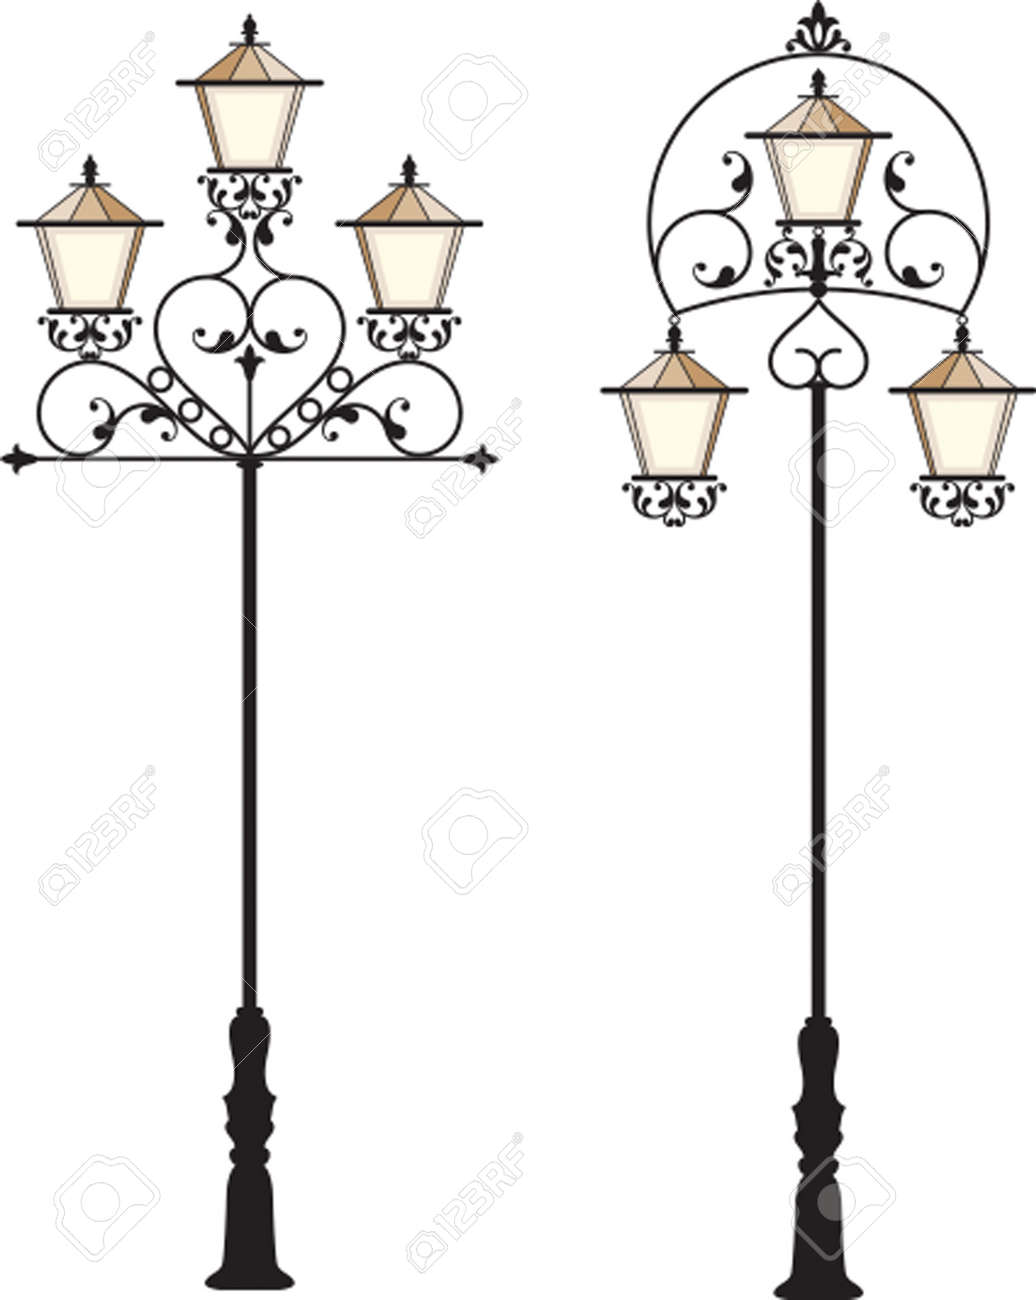 Wrought Iron Street Lamp Post Vector Art Royalty Free Cliparts ... for Street Lamp Post Vector  56bof